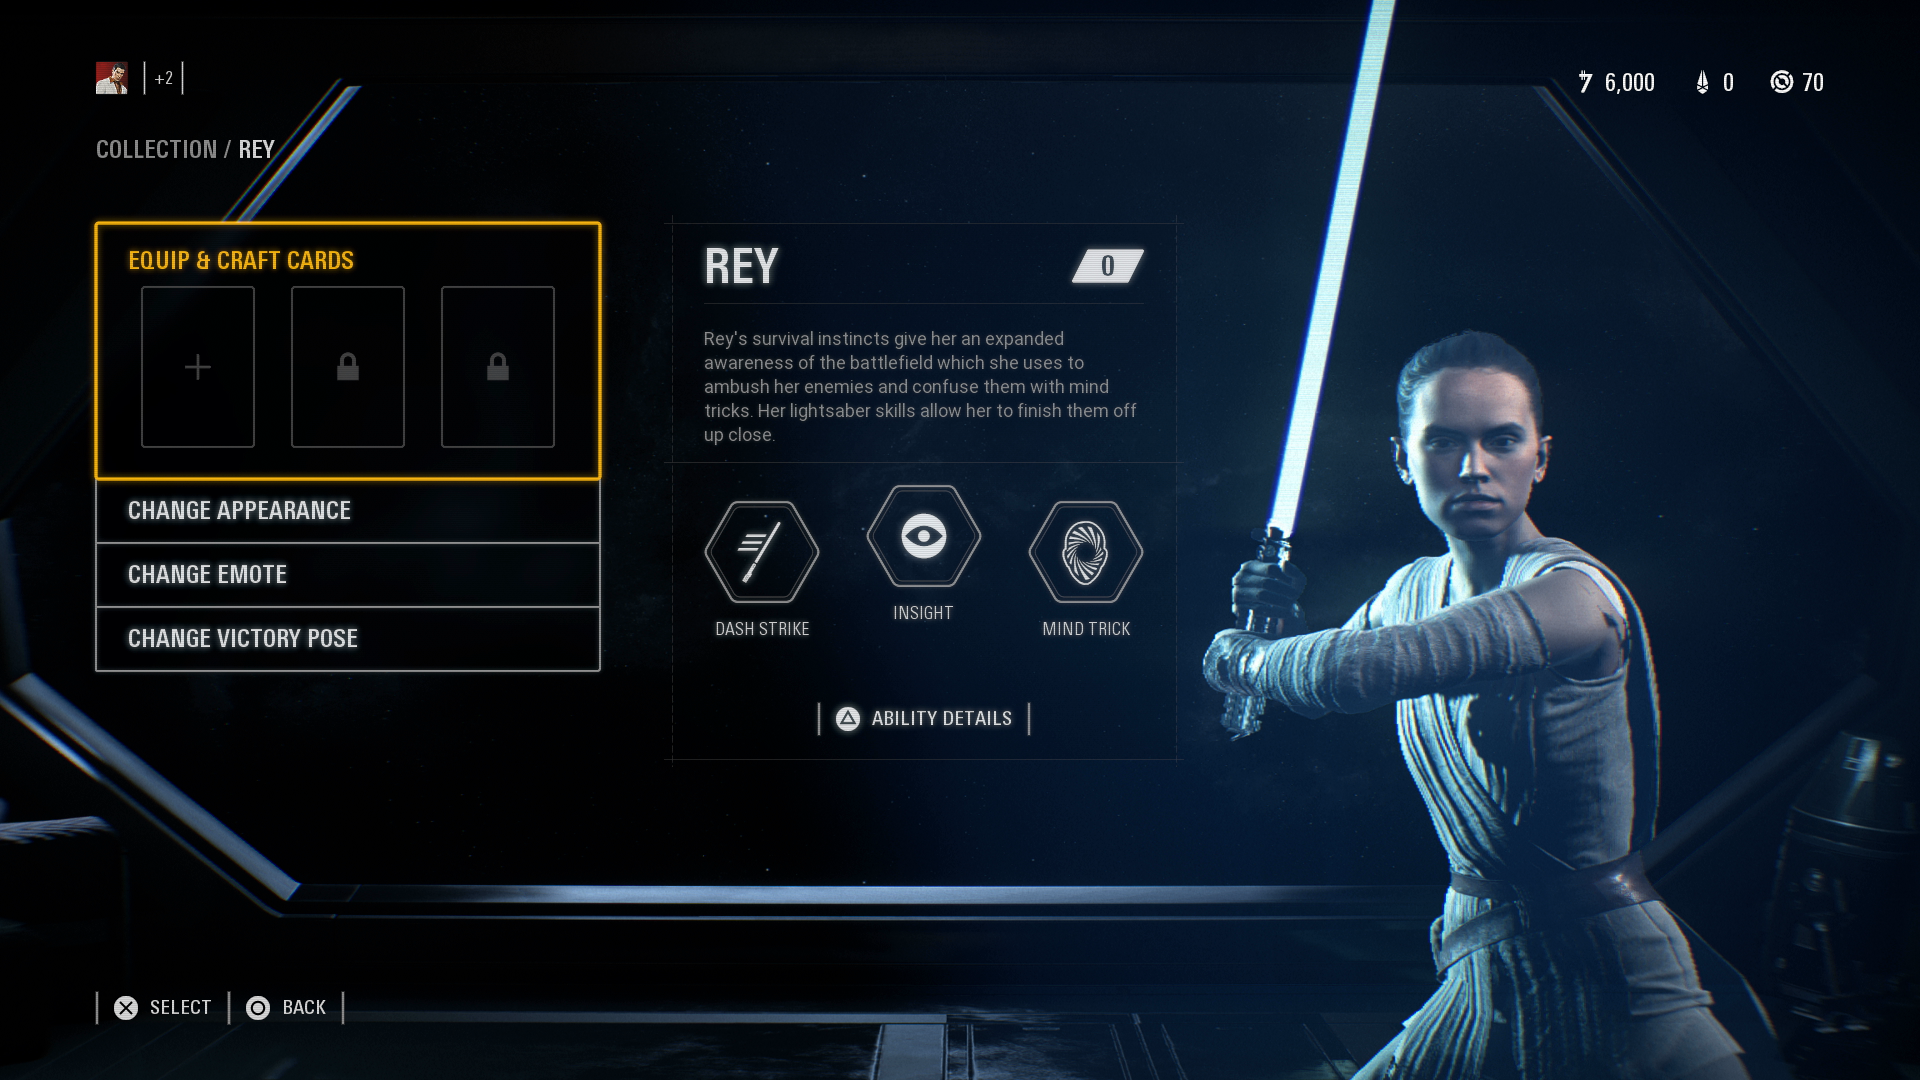 Star Wars Battlefront II microtransactions are coming back